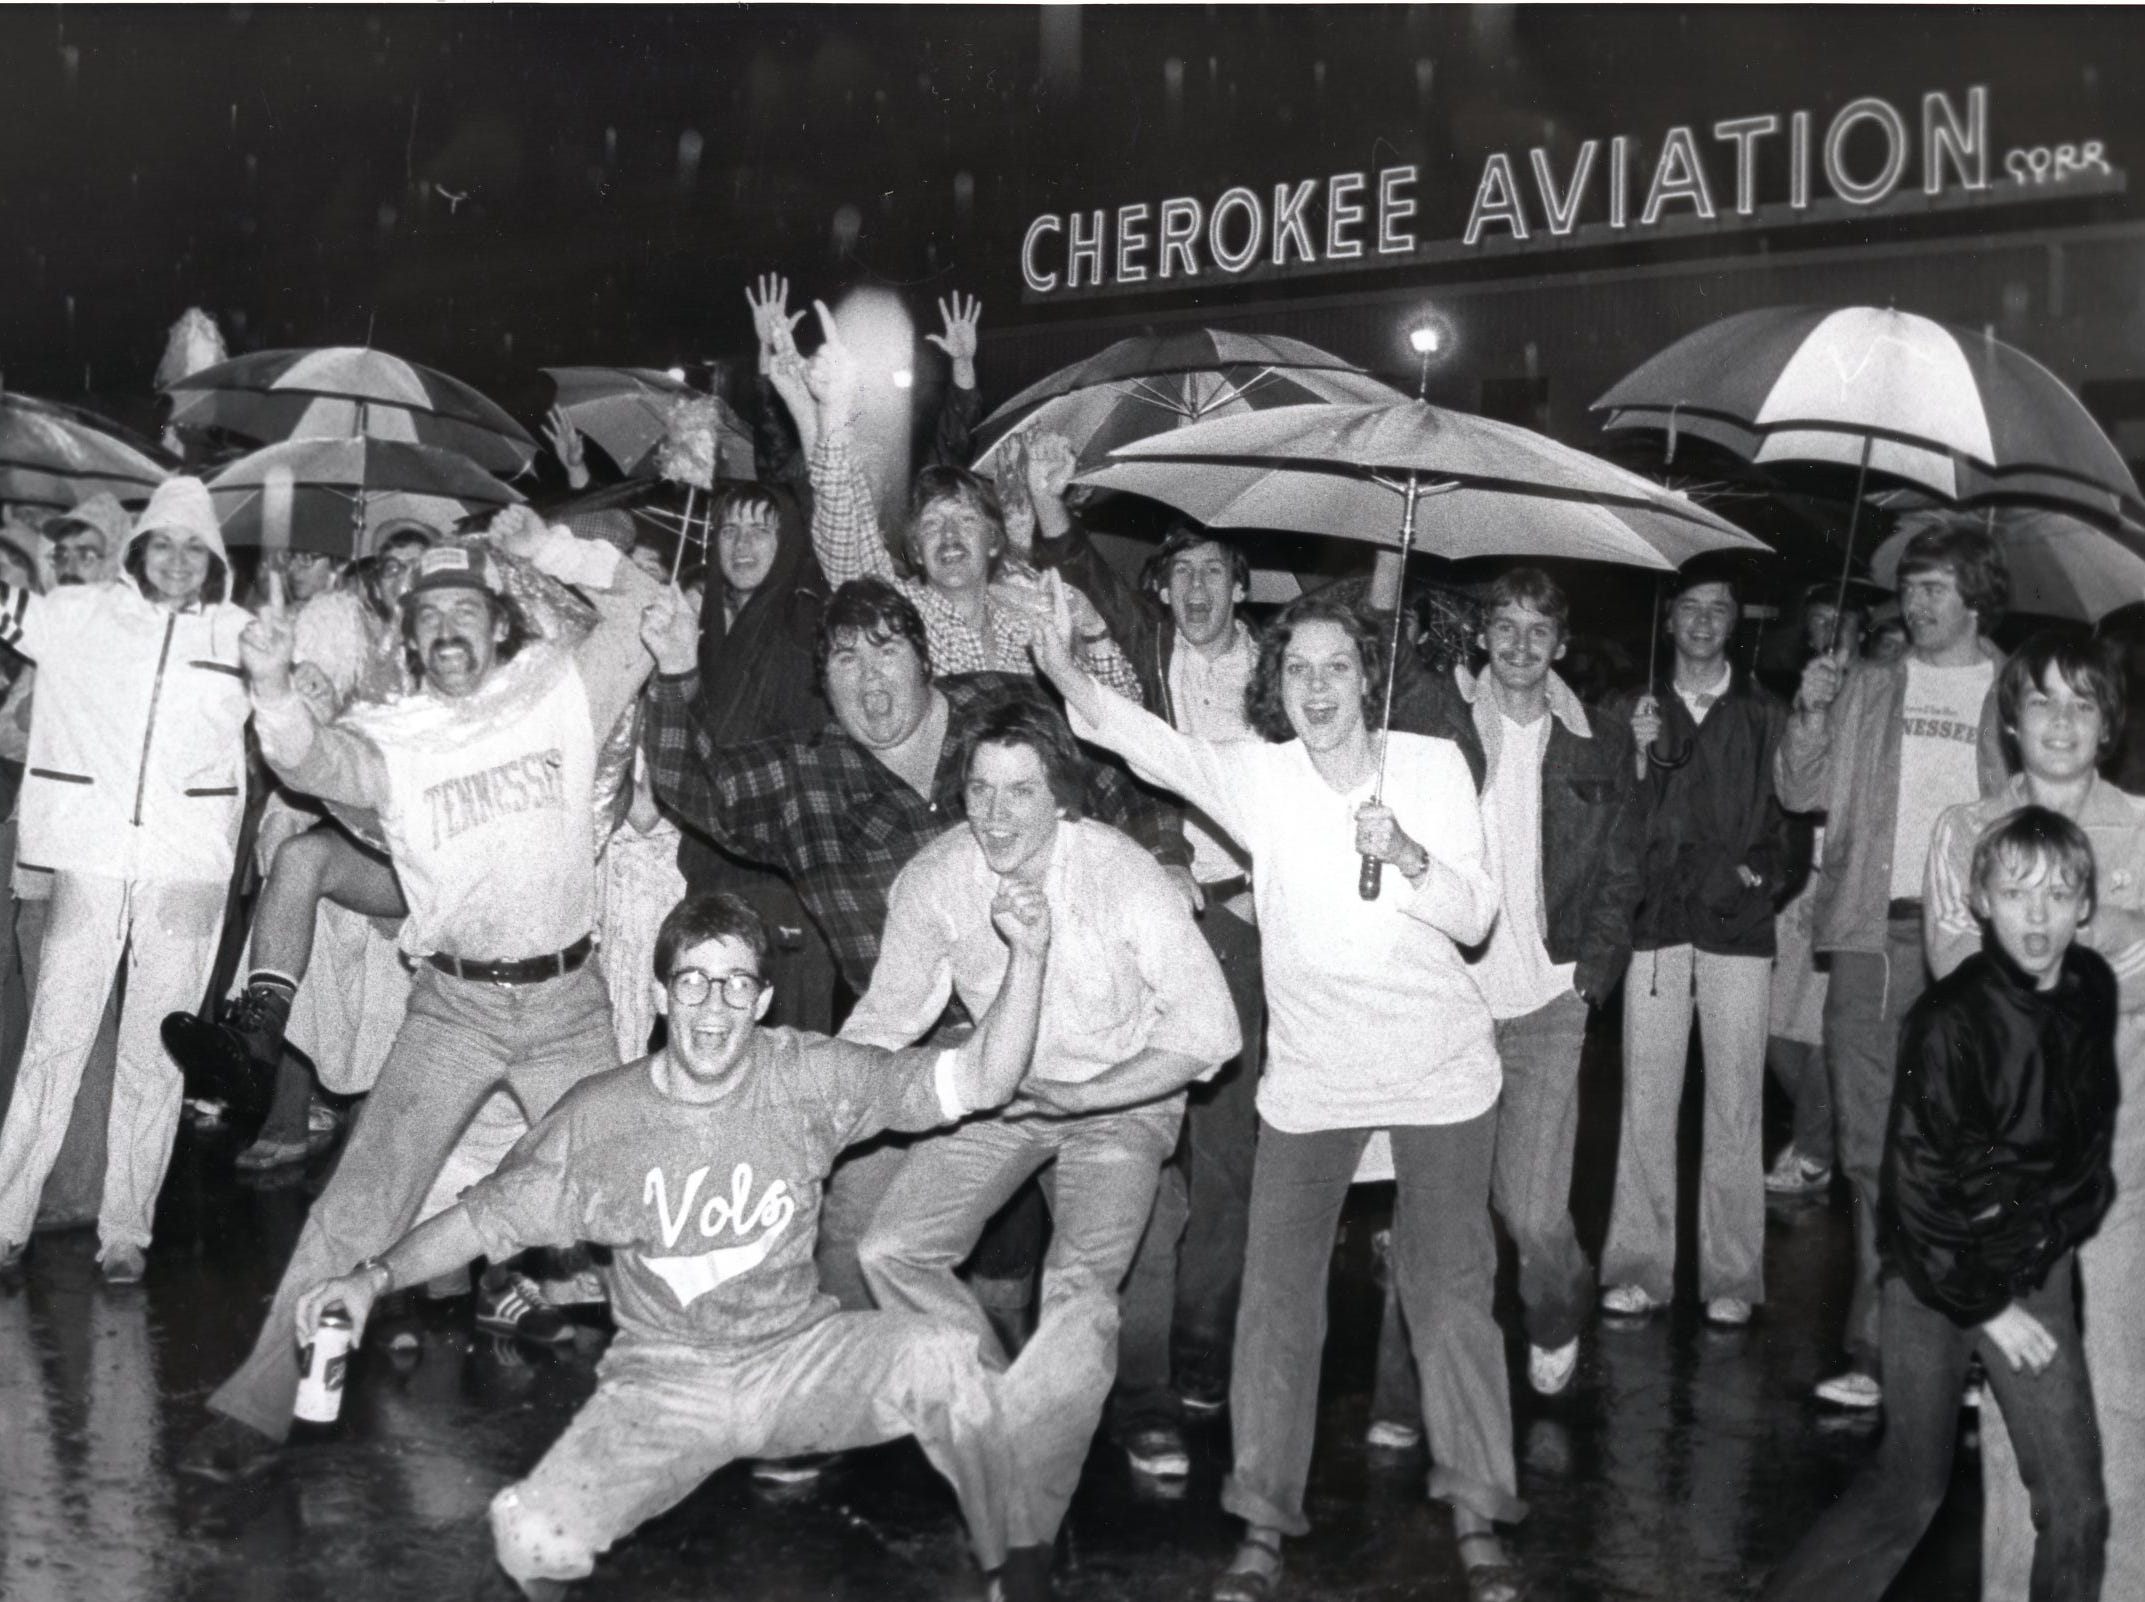 Tennessee basketball fans in March 1979.